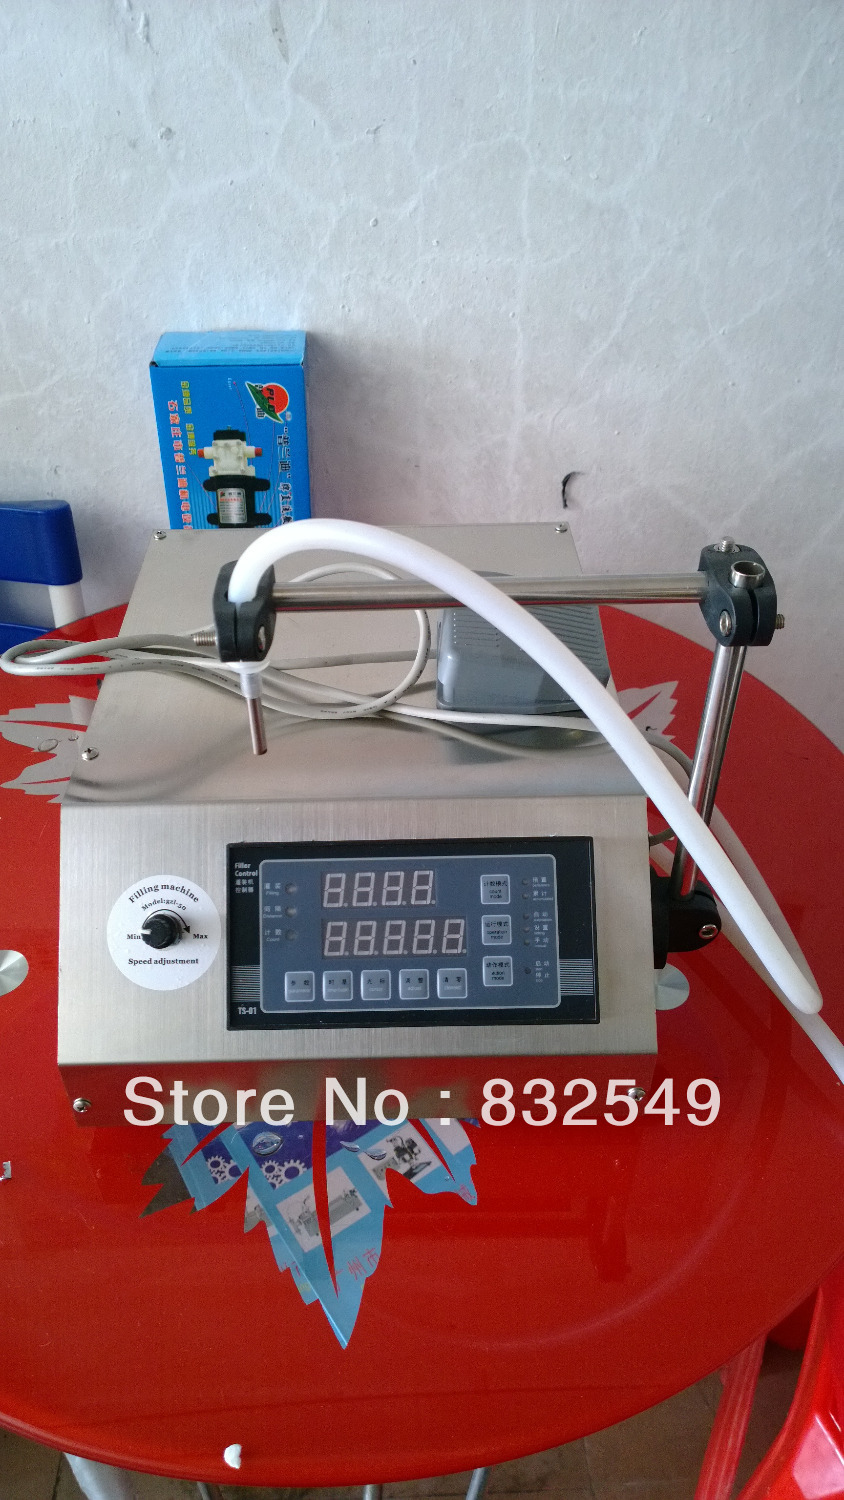 Digital electrical liquids filling machine,water pumping filler,automatic beverage packaging equipment,5L,stainless,warranty(China (Mainland))